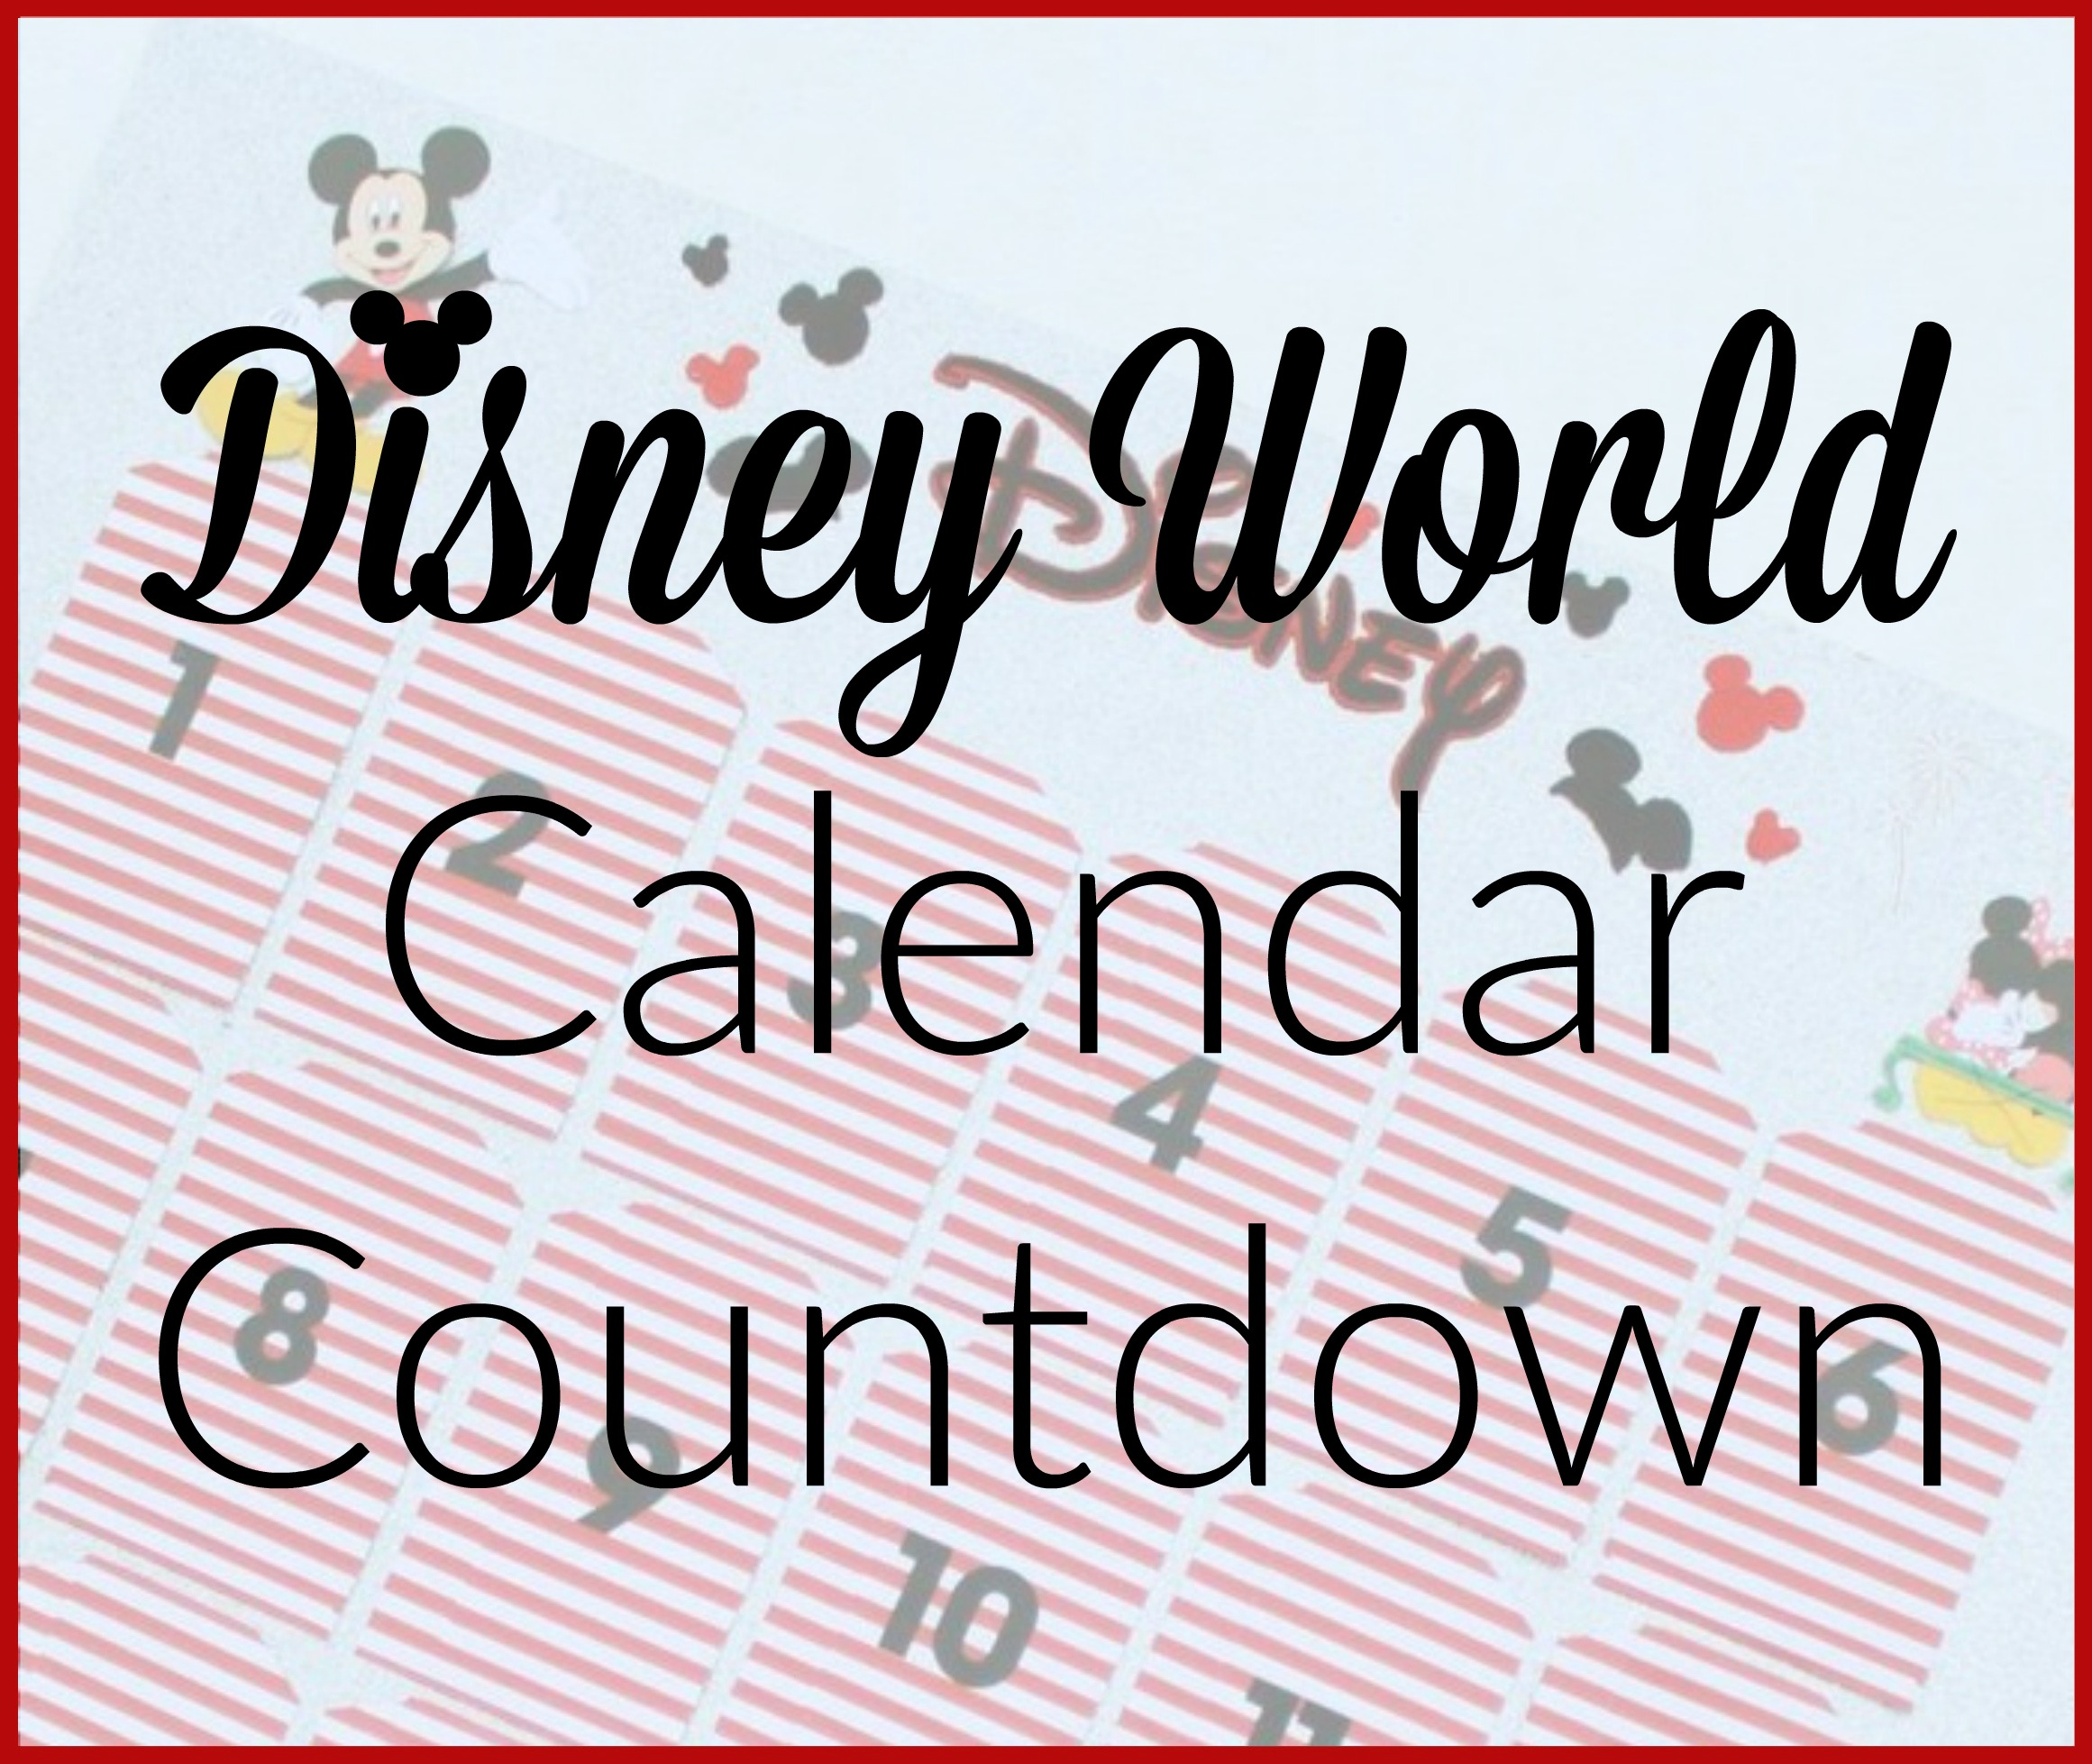 Disney World Calendar Countdown